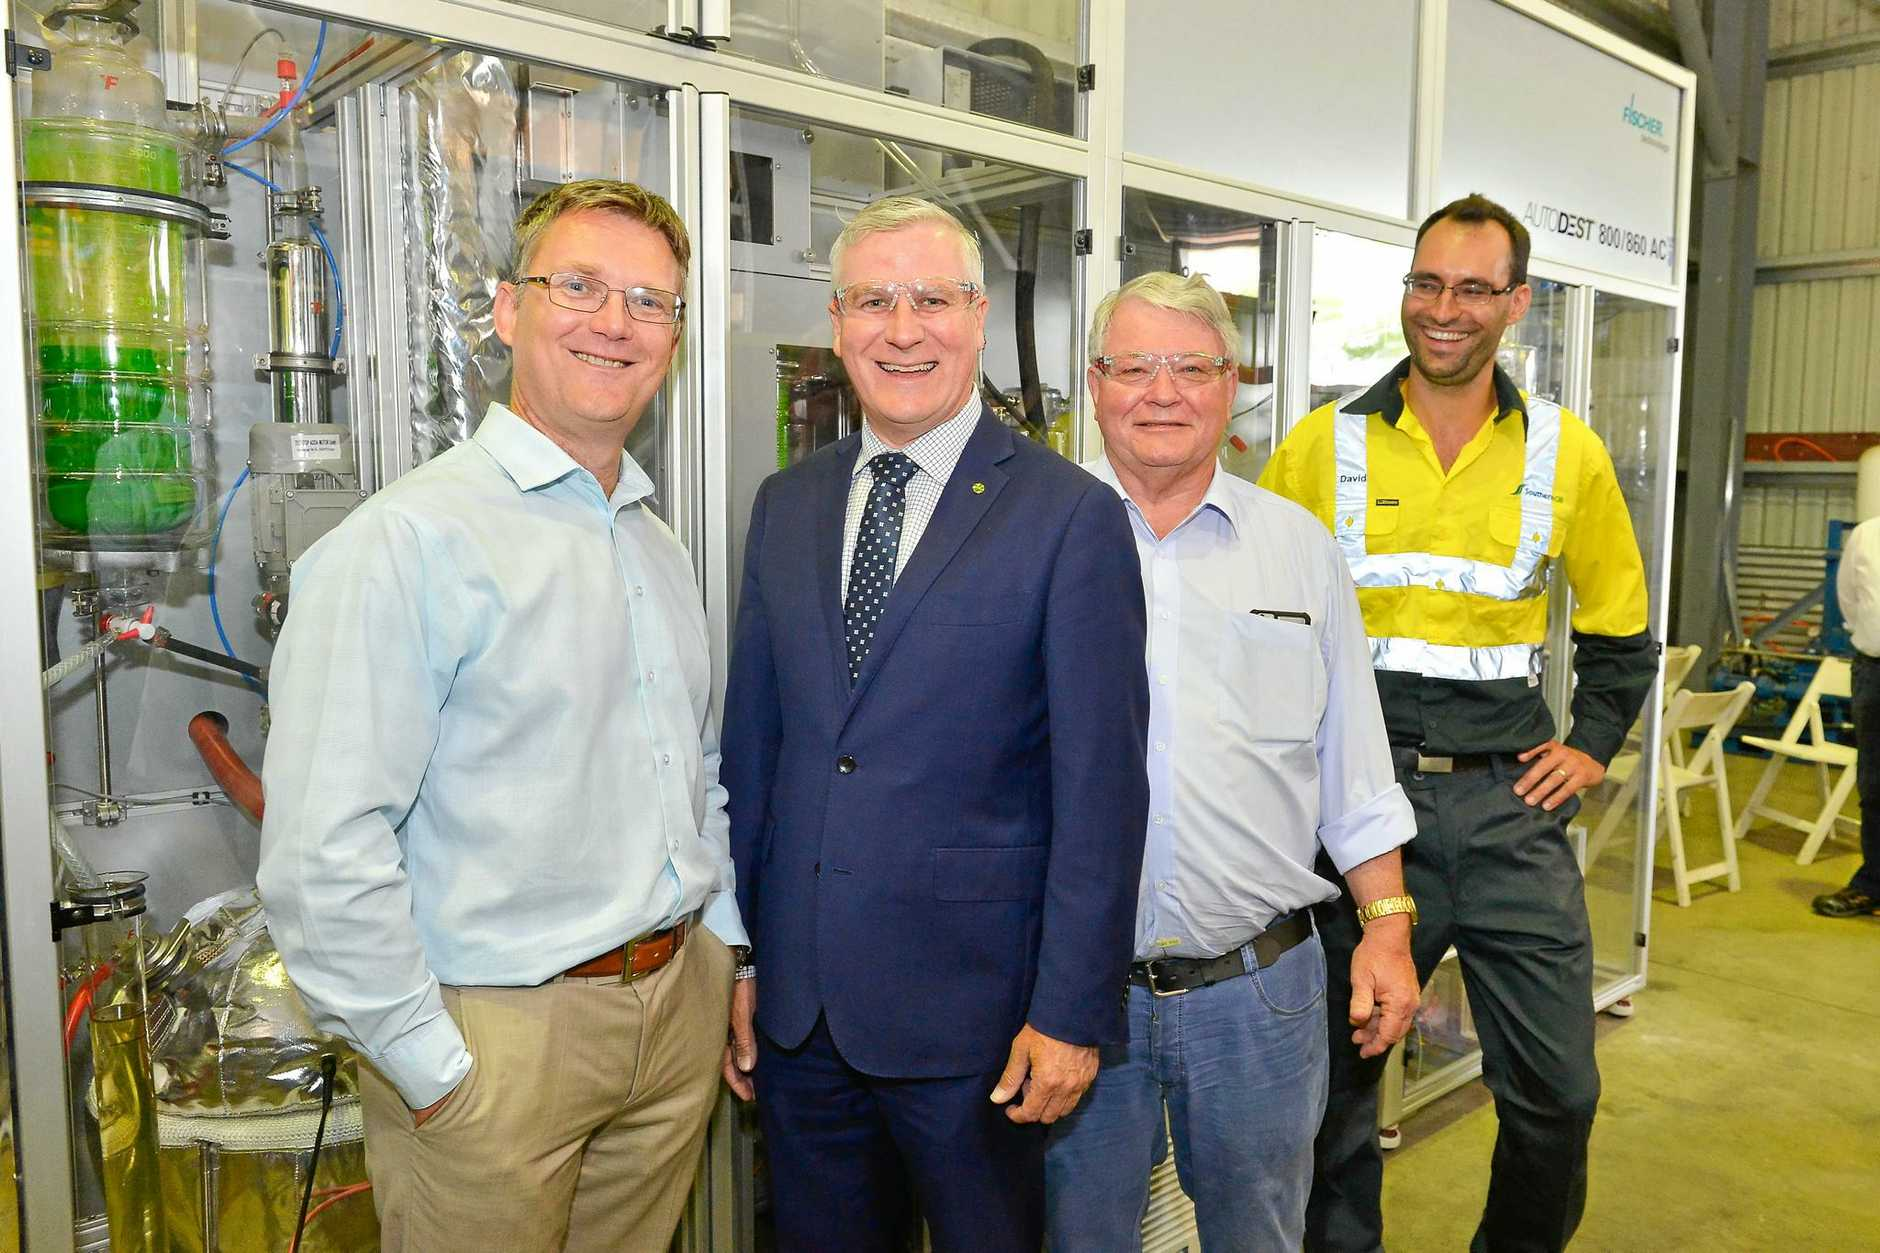 Tim Rose, managing director Northern Oil Refineries, Michael McCormack mp, Ken O'Dowd mp and lead research chemist David Schaller at Northern Oil Refineries.